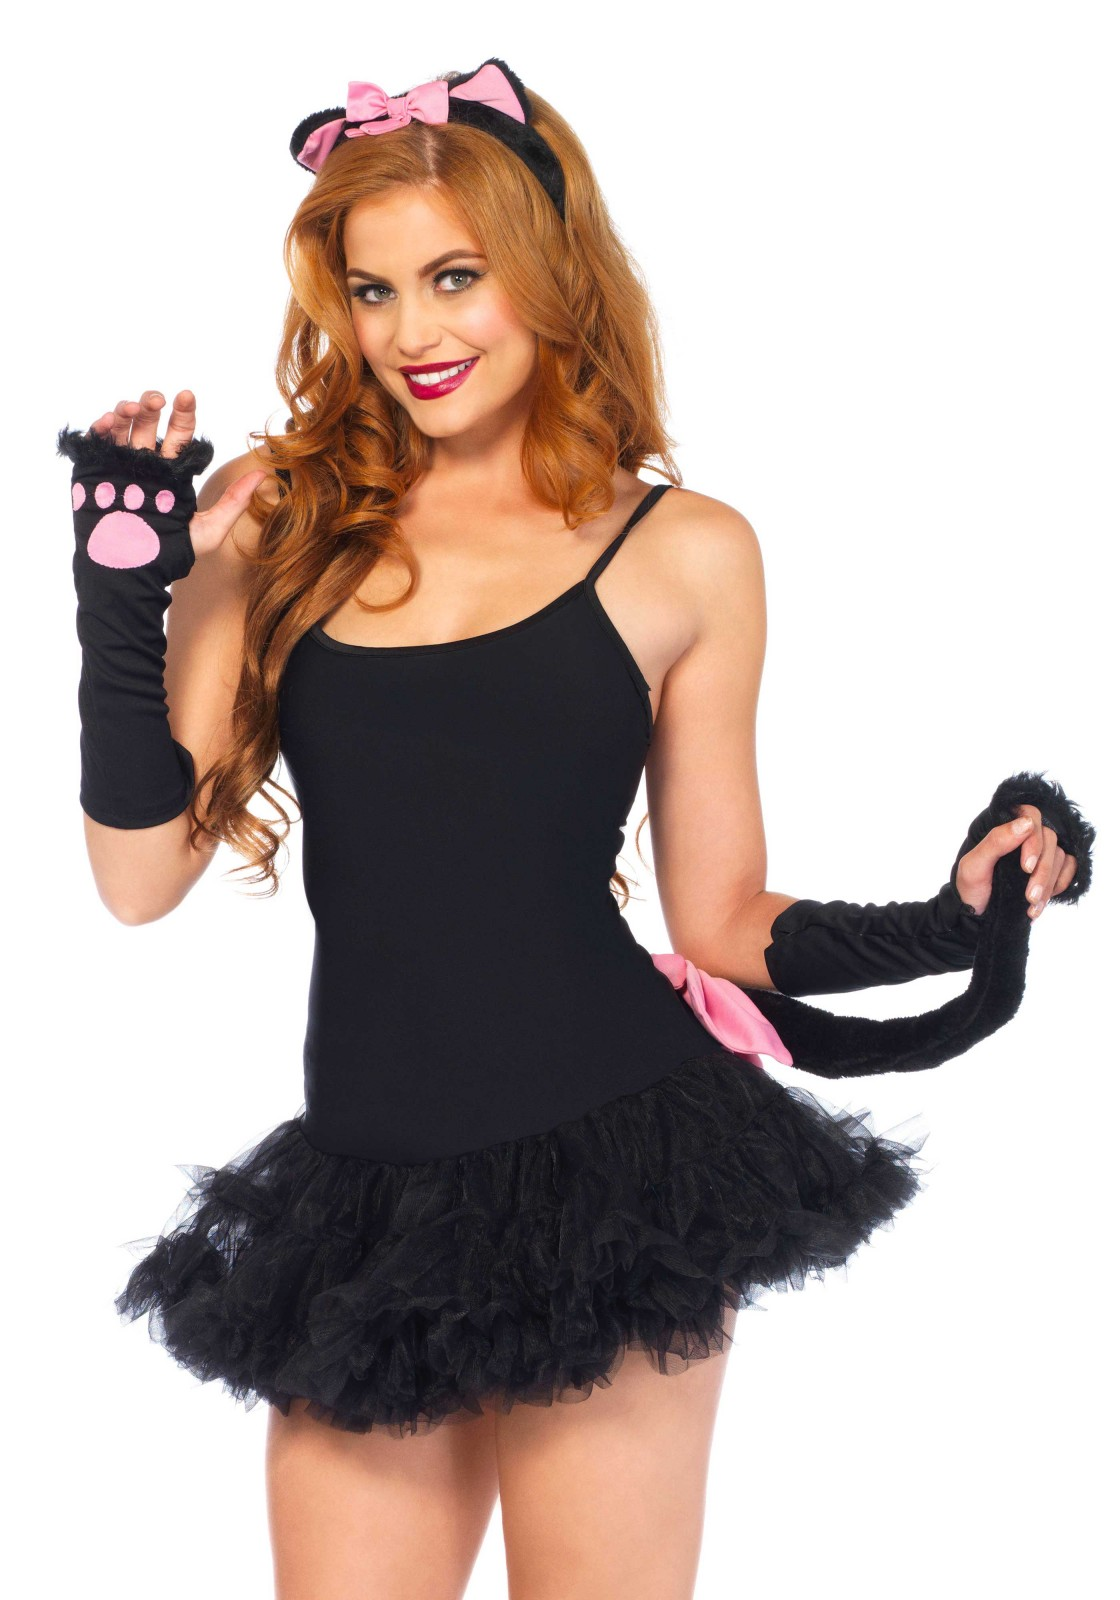 3Pc. Gloves, Headband And Tail. Please take note that the pink bow on the tail is not included.